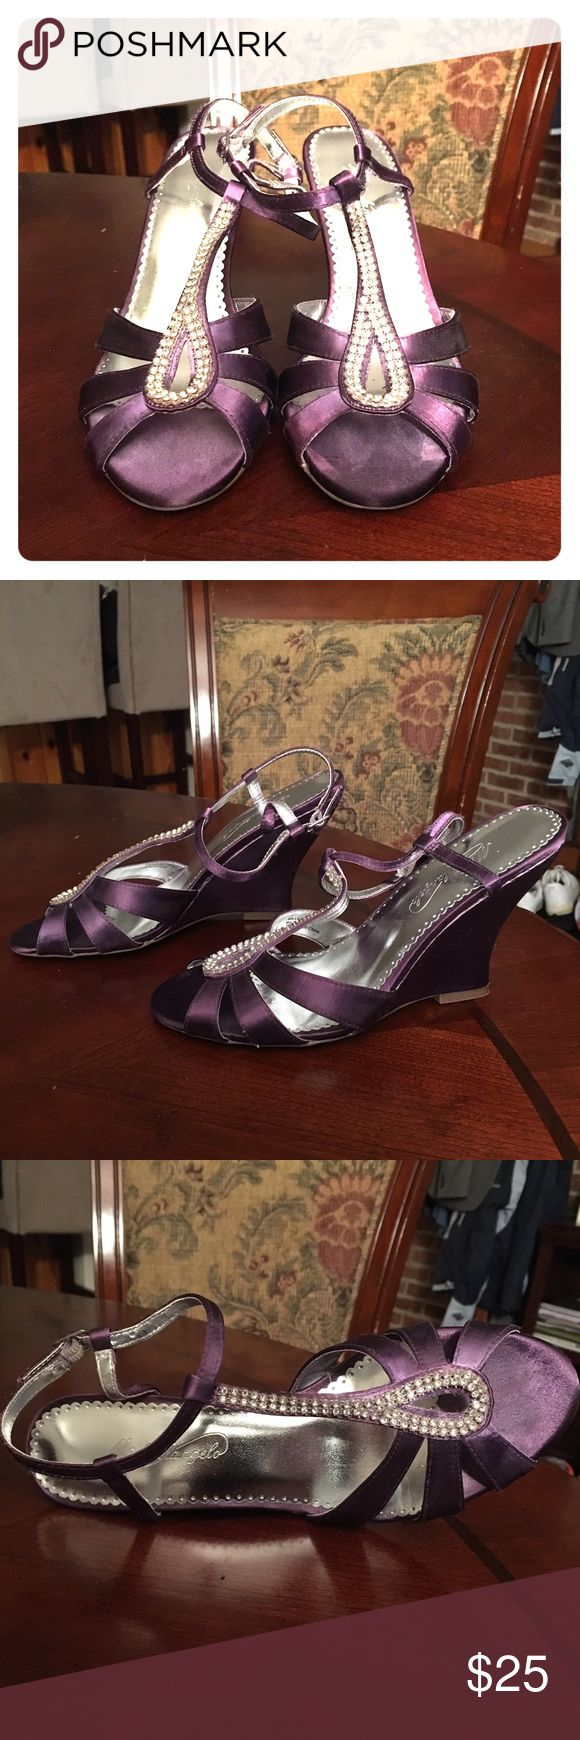 David's Bridal Bridesmaid Wedge Purple color. Michaelangelo brand. Style: Willow.  Size 7.  4 inch. Worn only once. David's Bridal Shoes Wedges